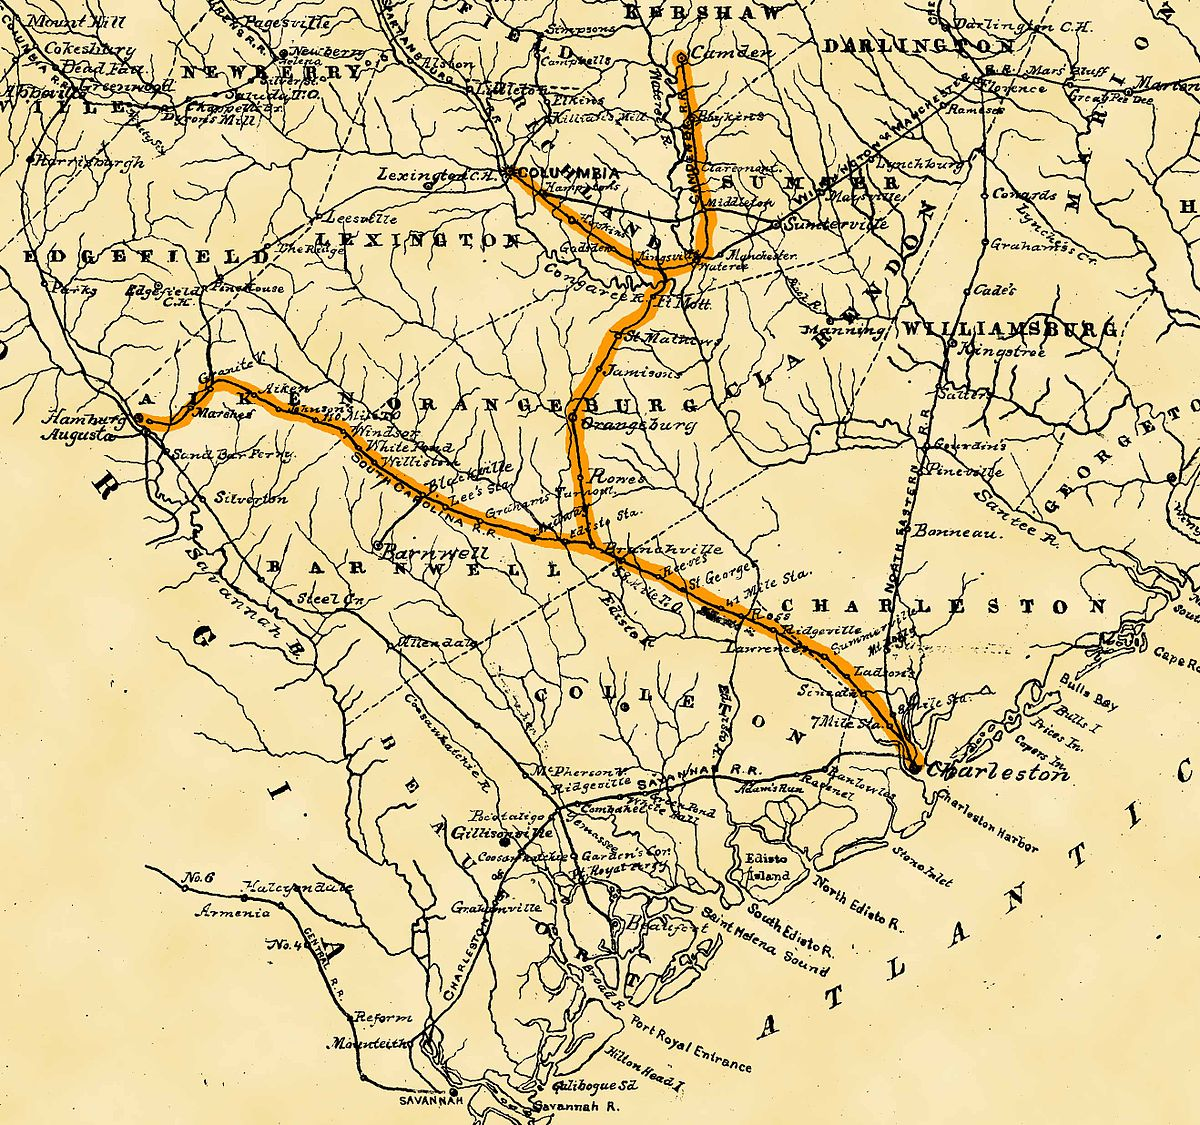 South Carolina Railroad Wikipedia - Railroad map us 1880